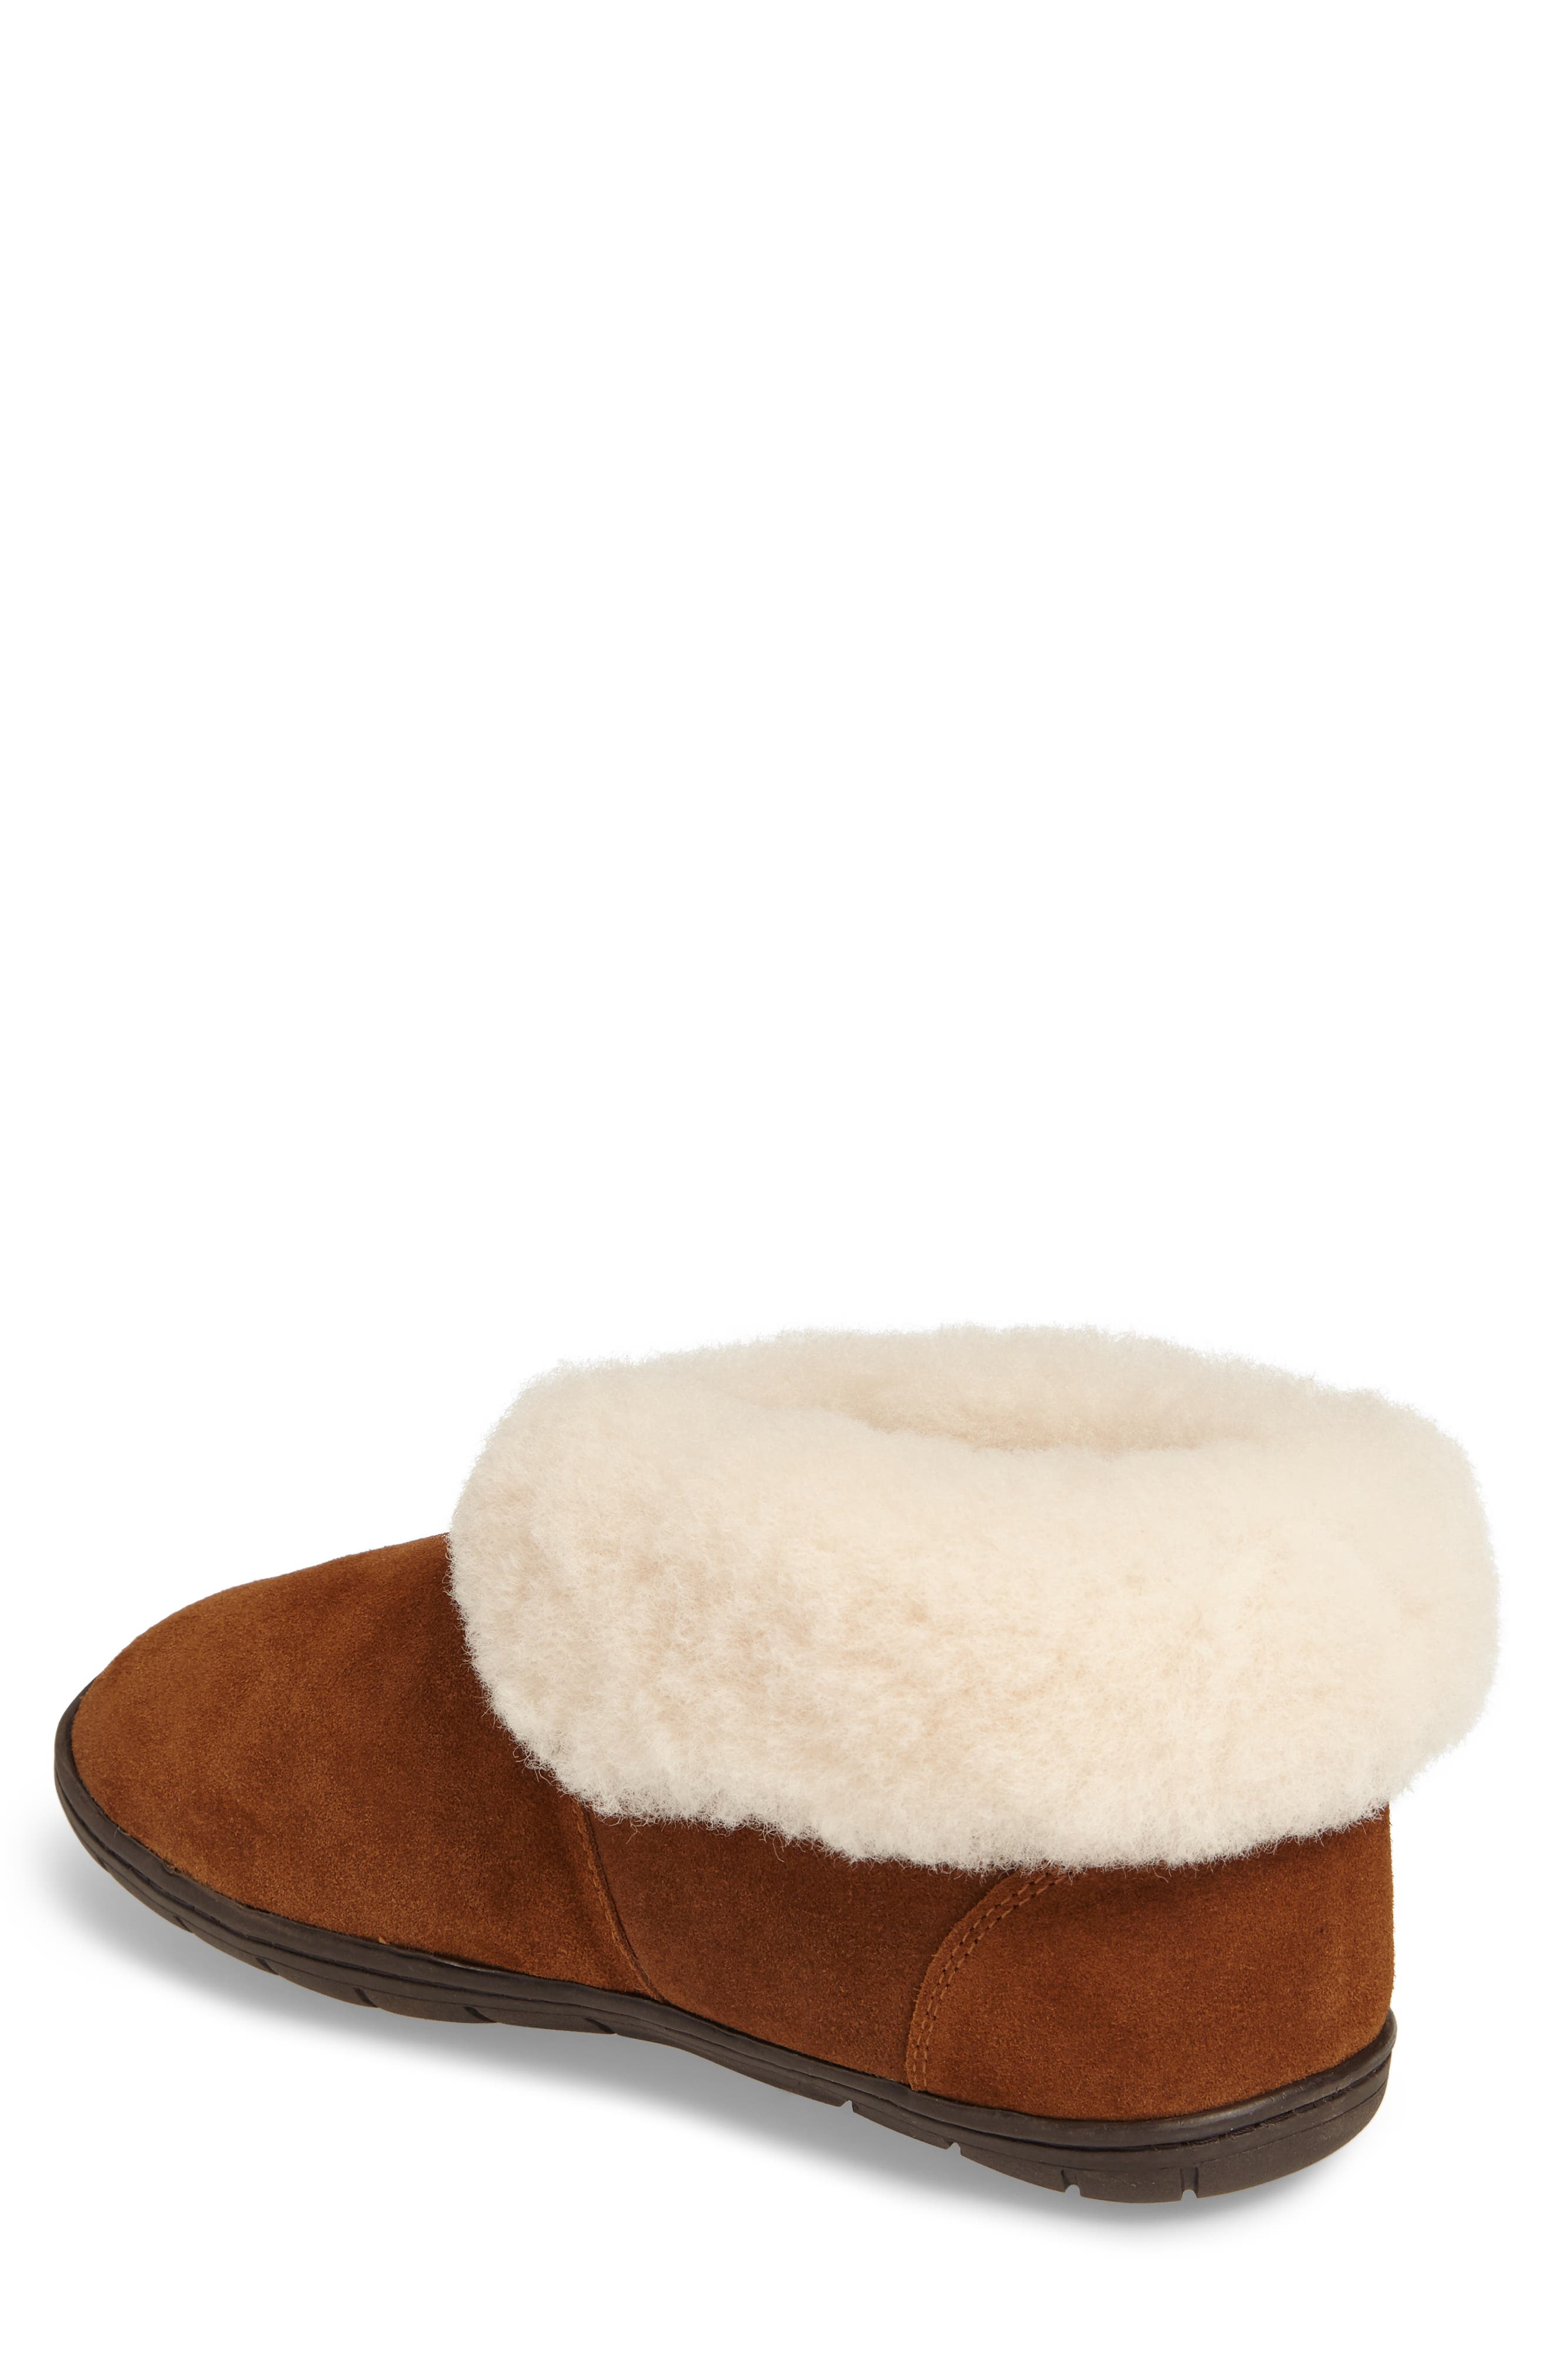 Tundra Slipper Bootie with Genuine Shearling Lining,                             Alternate thumbnail 2, color,                             212